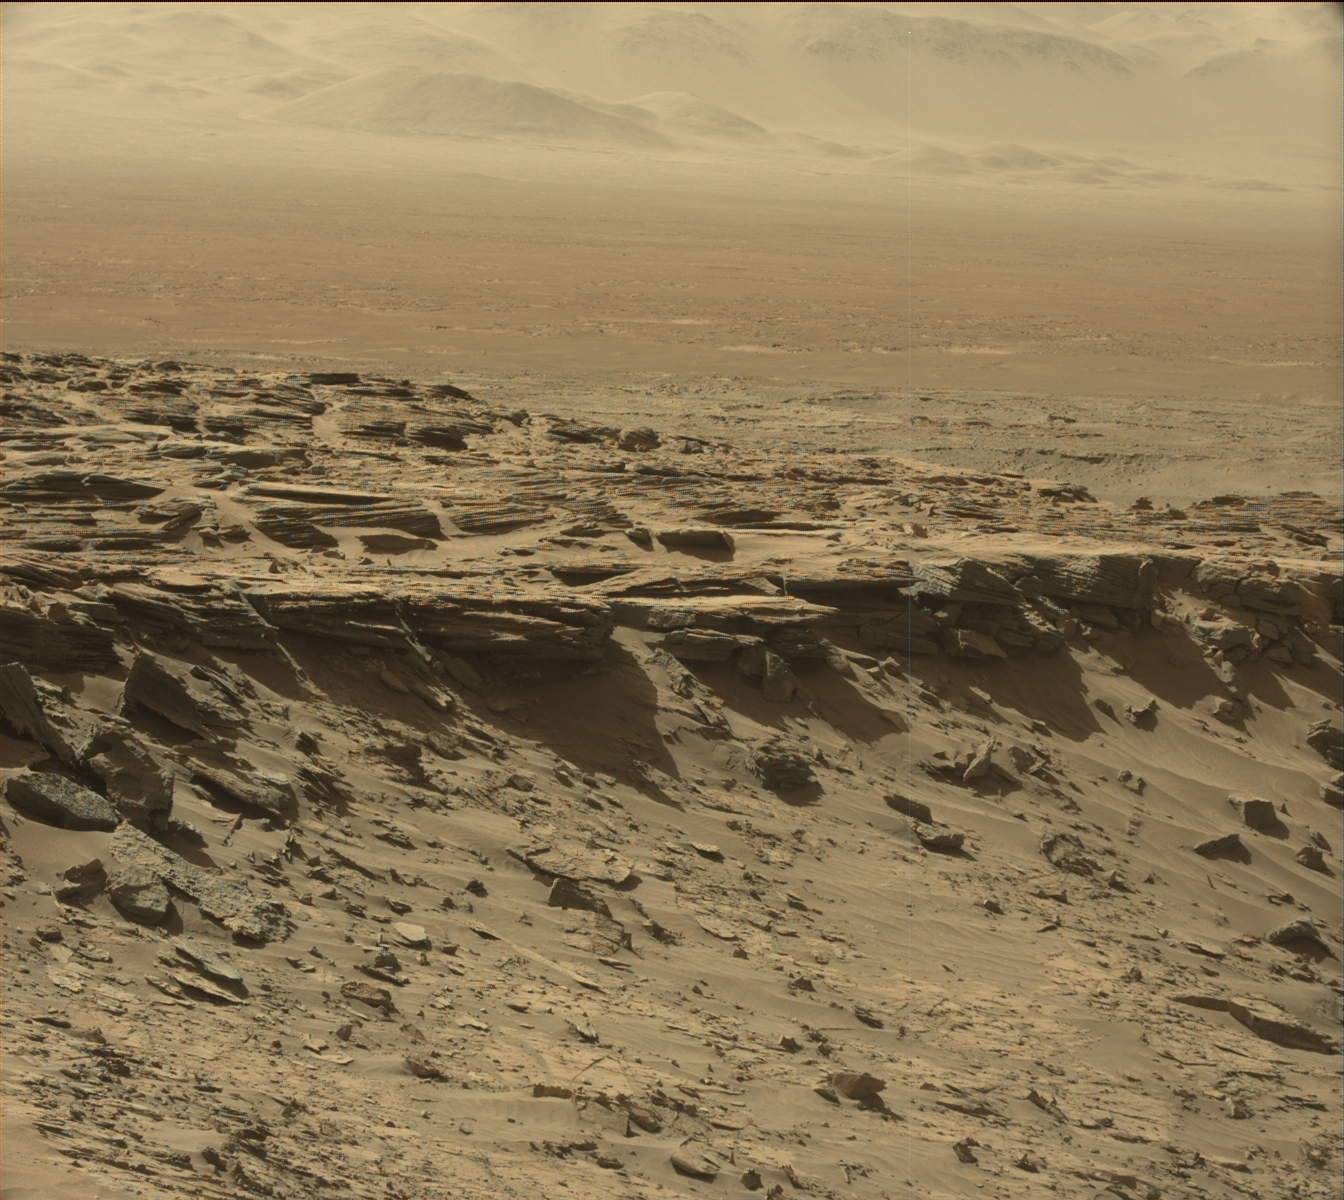 pictures from nasa mars - photo #44